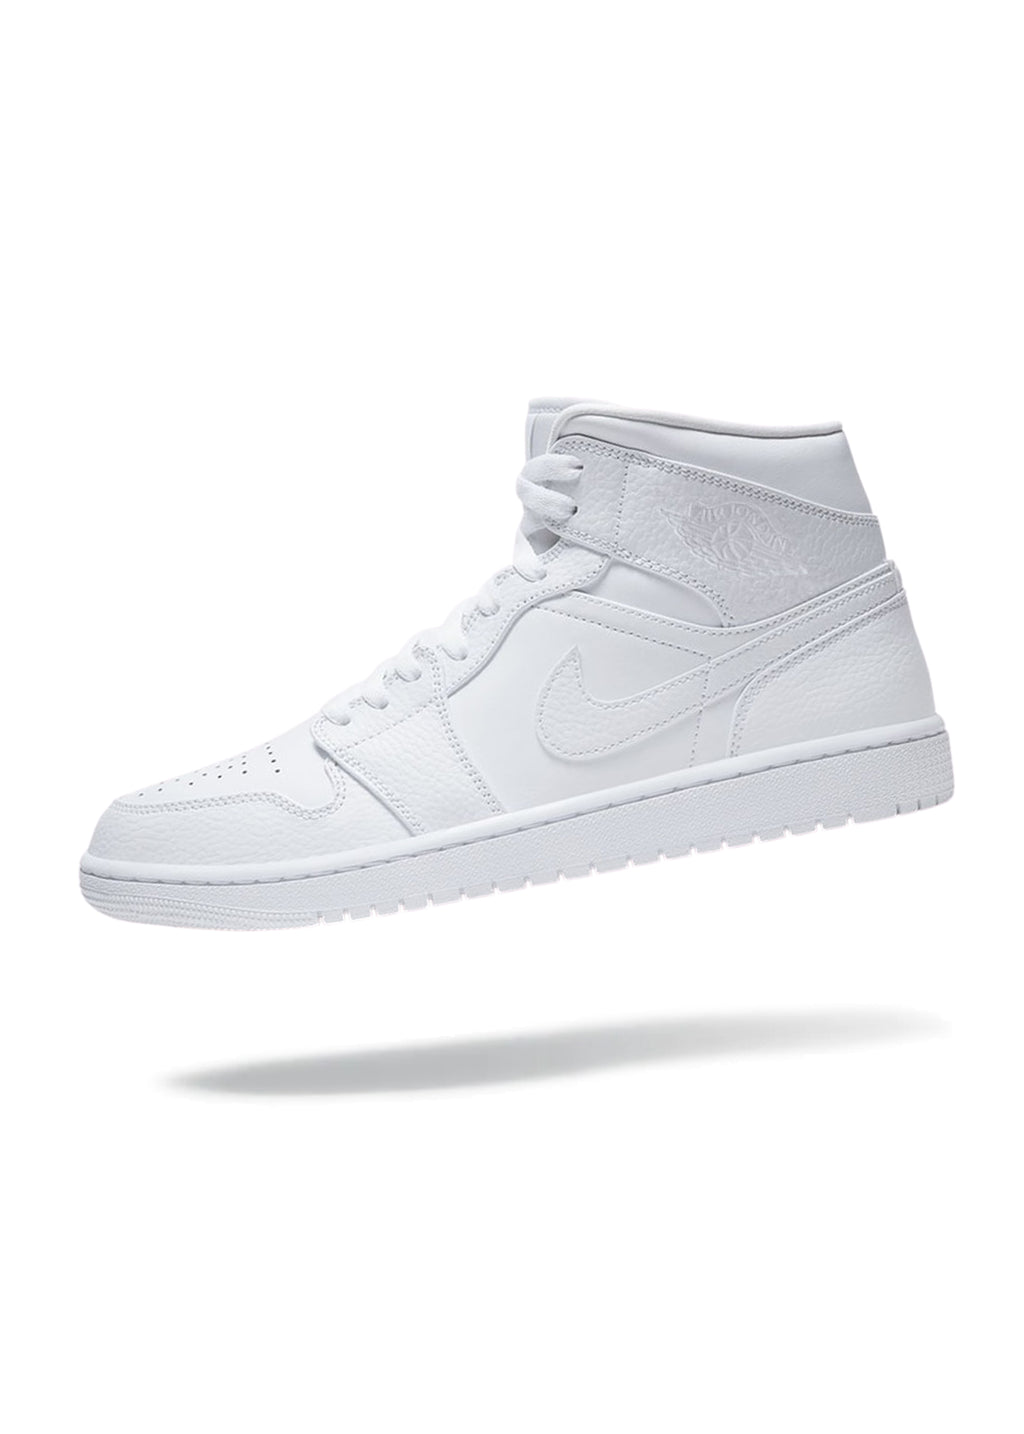 Jordan 1 Mid Triple White 2.0 (2020)